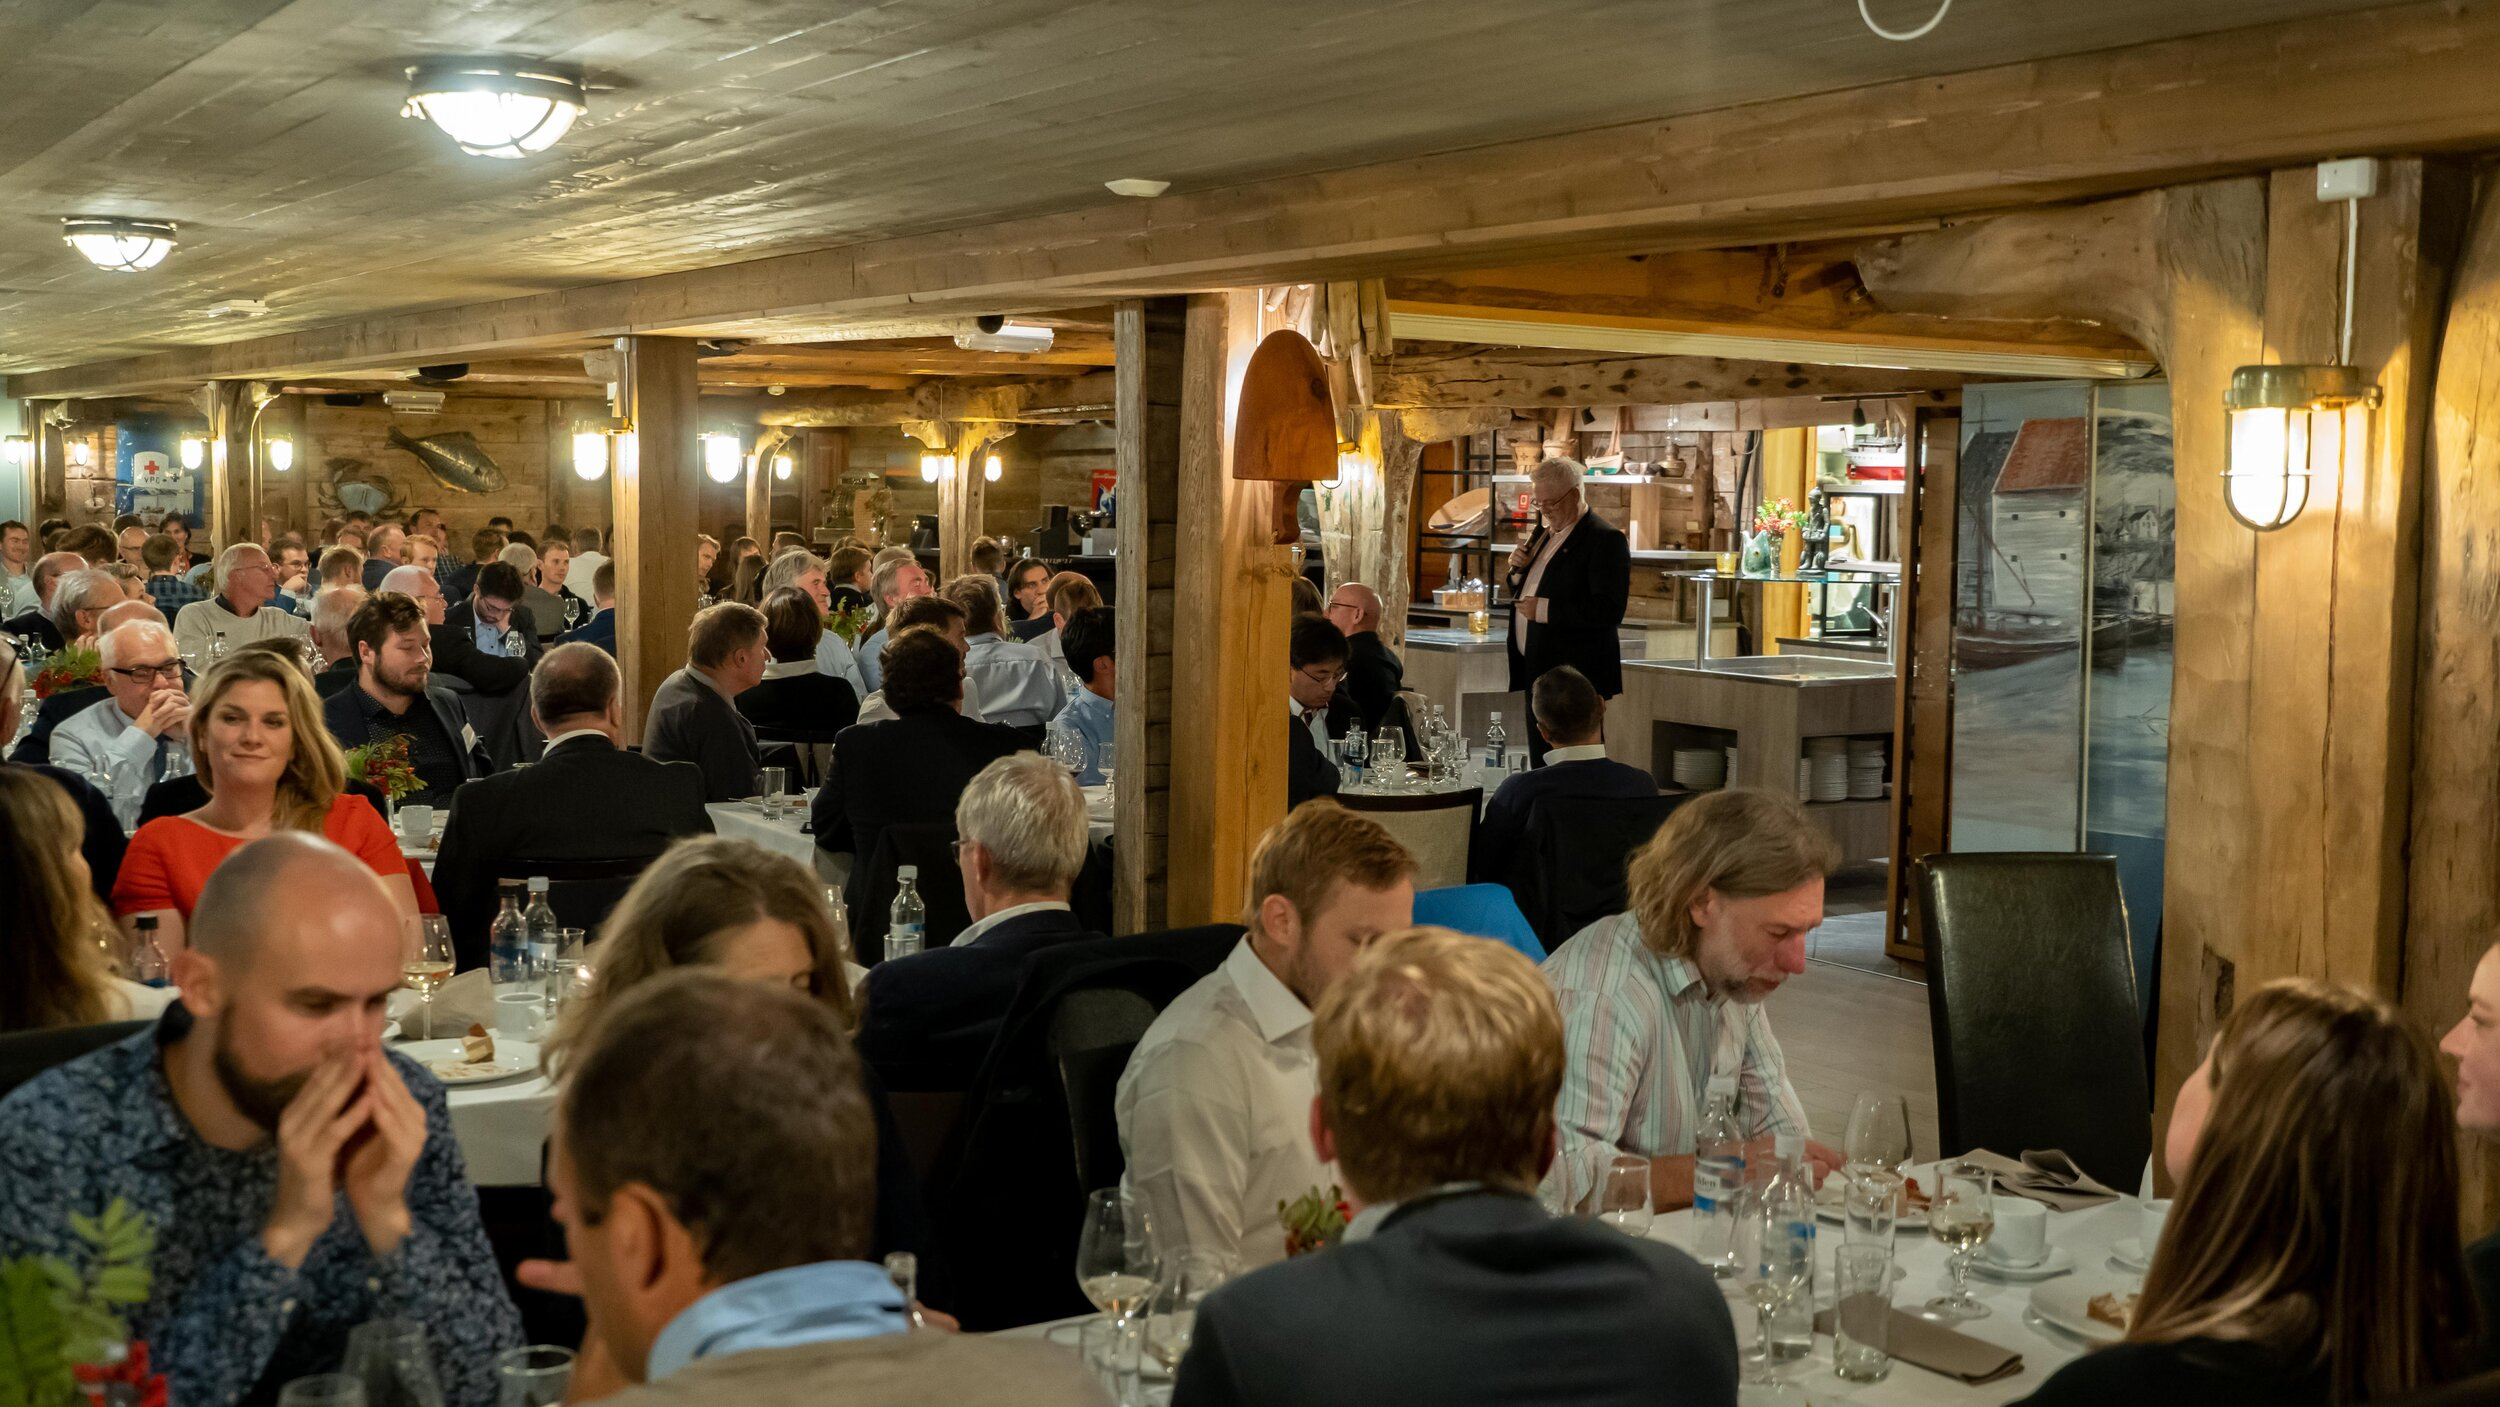 A memorable evening at Knutholmen: an exciting ferry trip from Florø and wonderful food served by the family run business